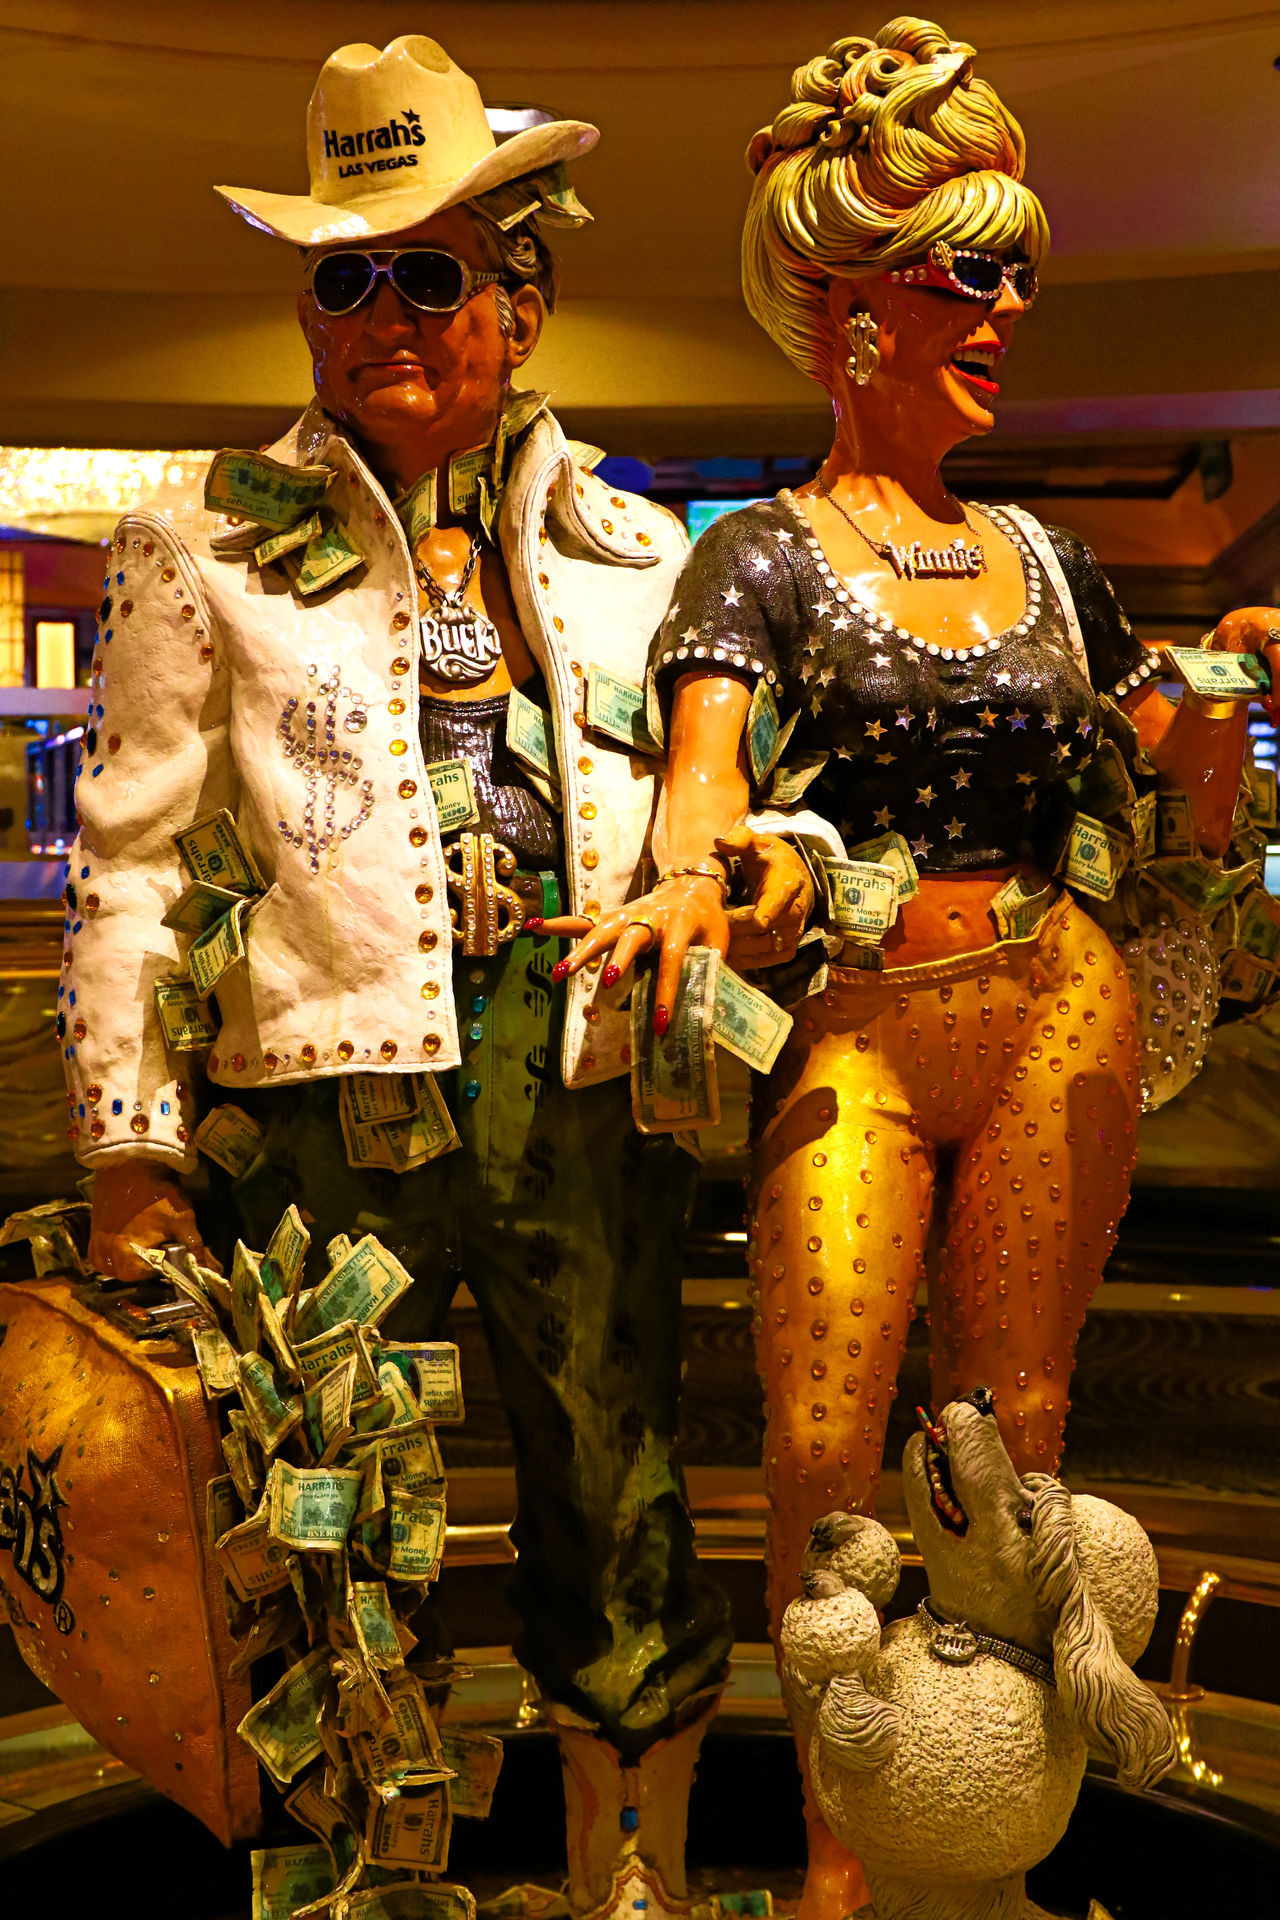 Las Vegas, NV, USA . Oct 10, 2016: couple statue of Harrah's Las Vegas hotel and casino. Harrah's is a hotel and casino owned and operated by Caesars Entertainment Corporation 43 Golden Moments America Caesarspalace Casino Editorial  Entertainment Eyeem Collection Gamble Gambling Getty Getty Images Getty X EyeEm Harrahs  Las Vegas Library Money Money Money Money Nevada Stockphoto The OO Mission Travel Travel Destinations United States USA World